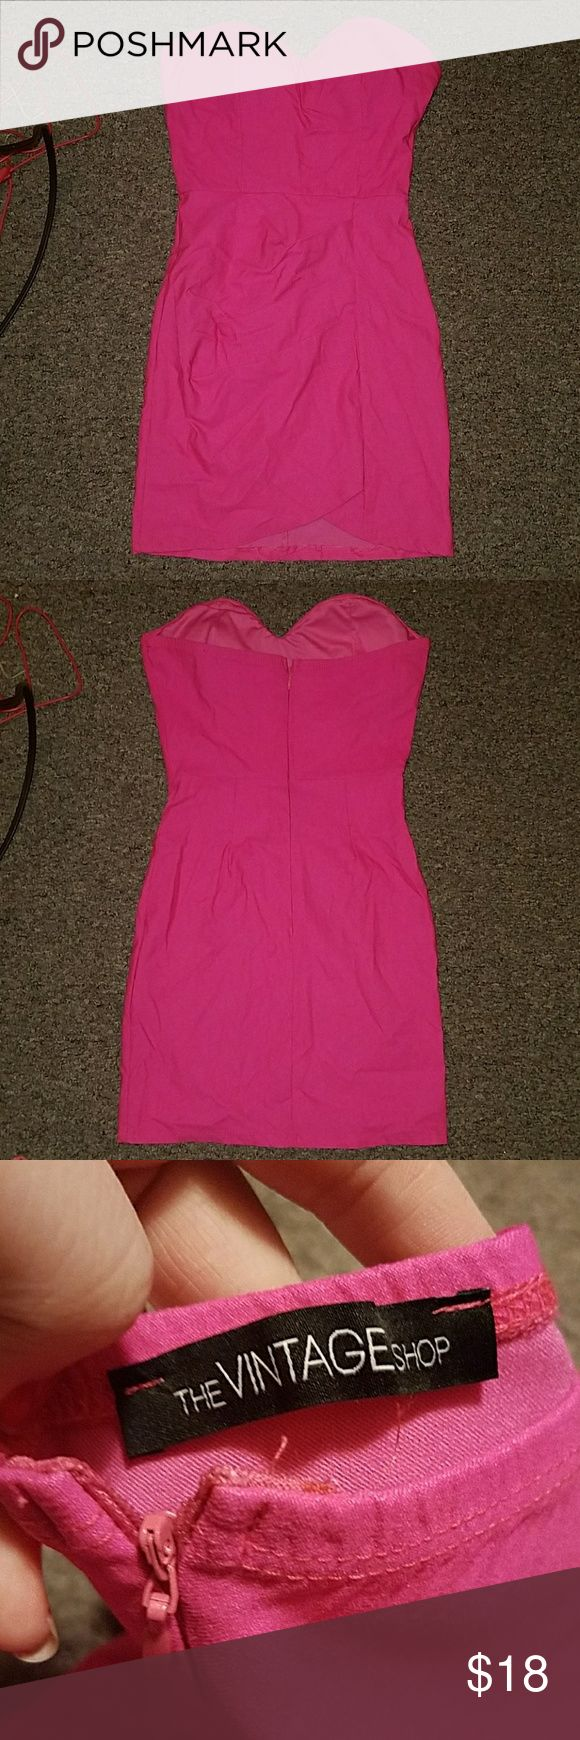 Strapless Neon pink bandage dress Size XS - S By the vintage shop Stretchy Form fitting Will look amazing on darker skin tones and tan skin tones Bundle and offer! The Vintage Shop Dresses Strapless